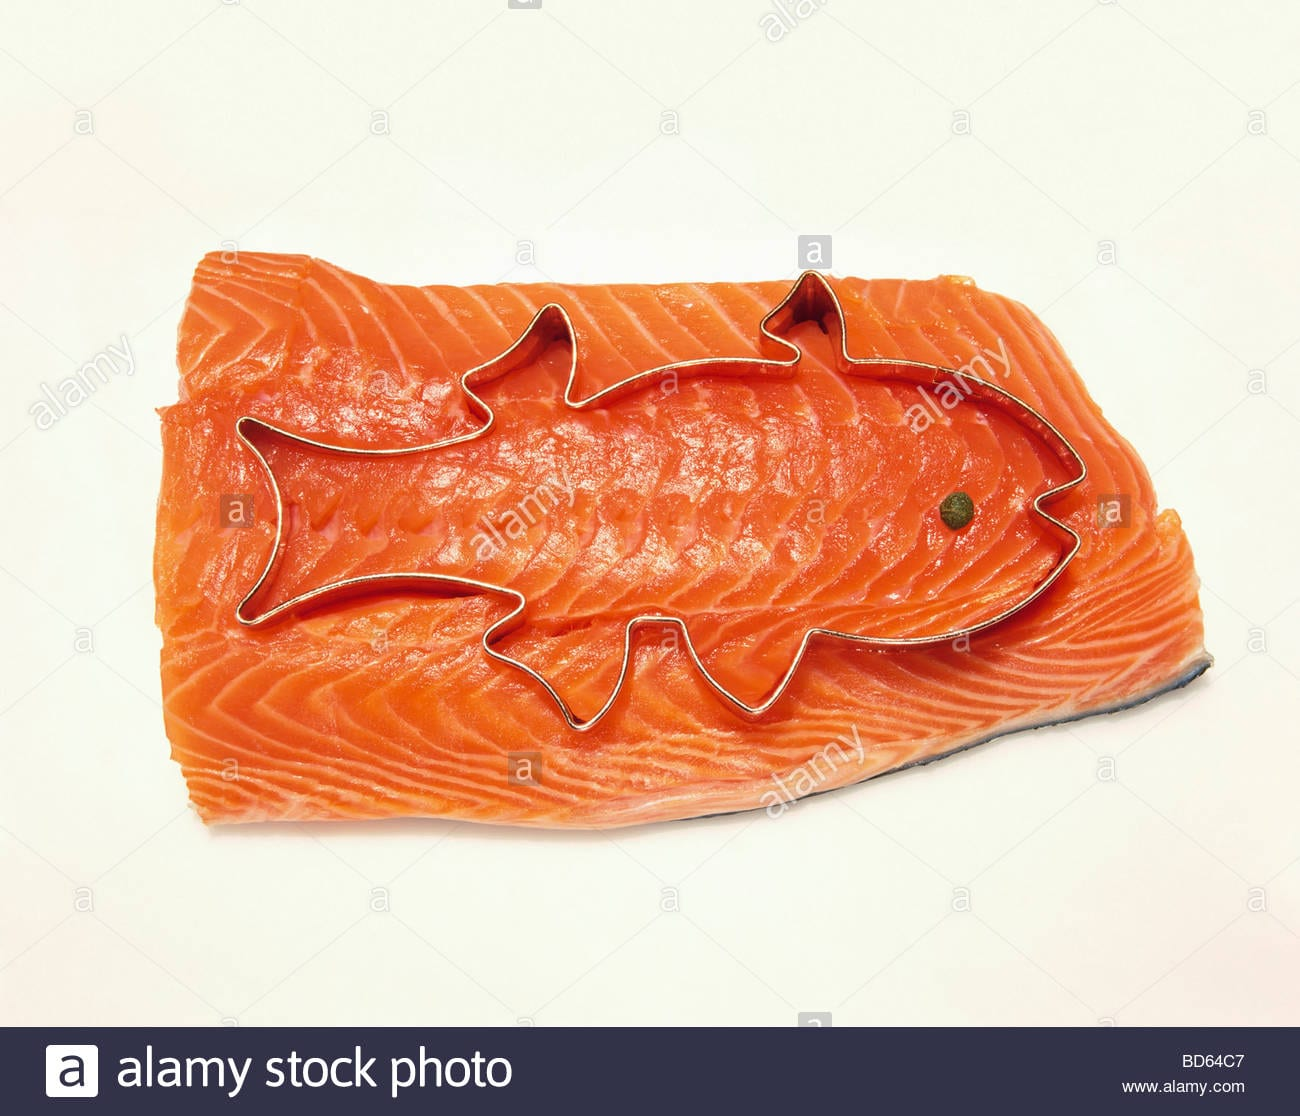 Salmon Fillet With A Fish Cookie Cutter; White Background Stock